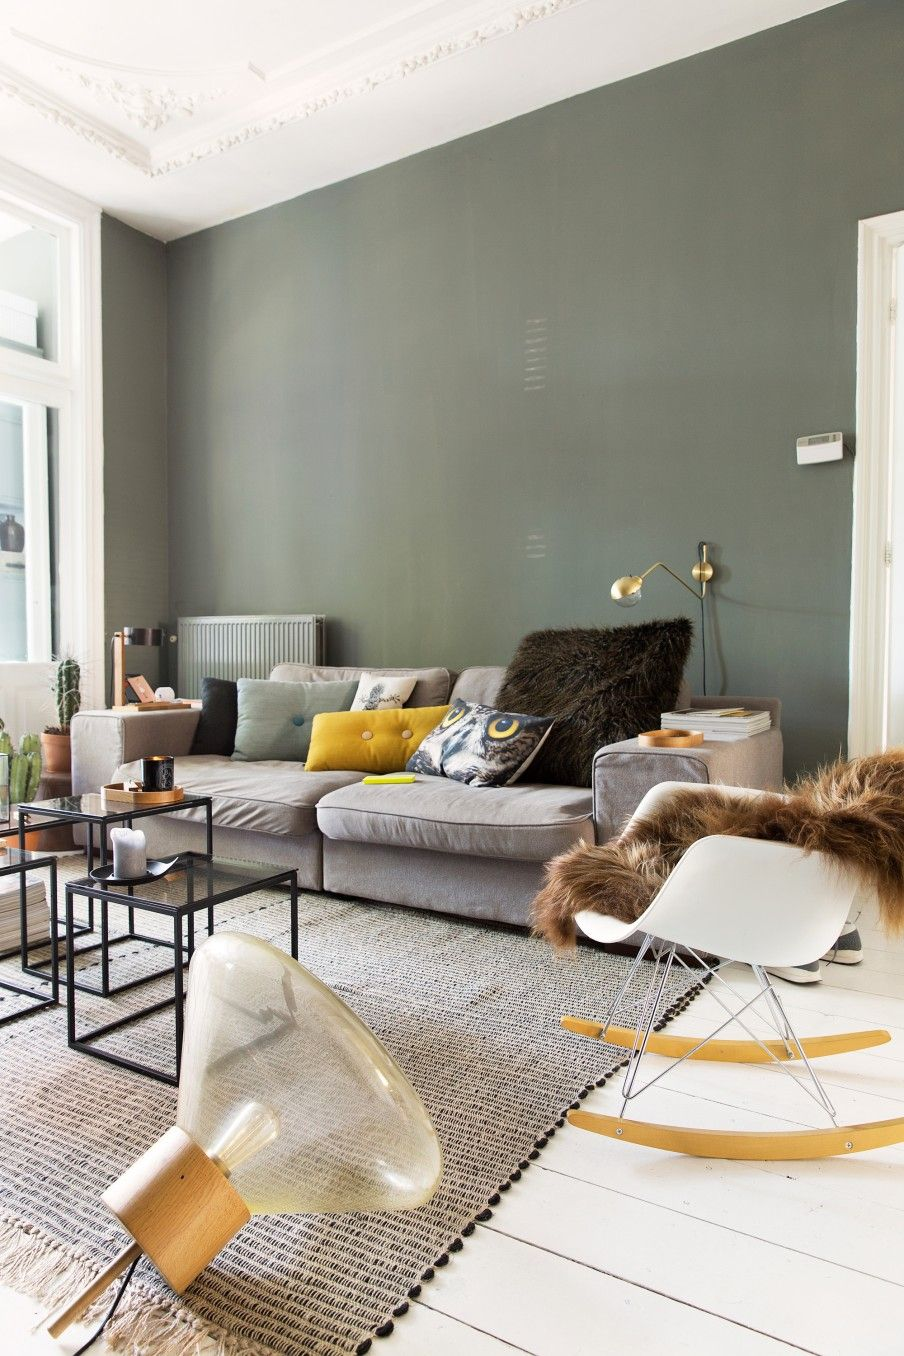 1000  images about sfeer, interieur: slaapkamer/woonkamer/tuin on ...